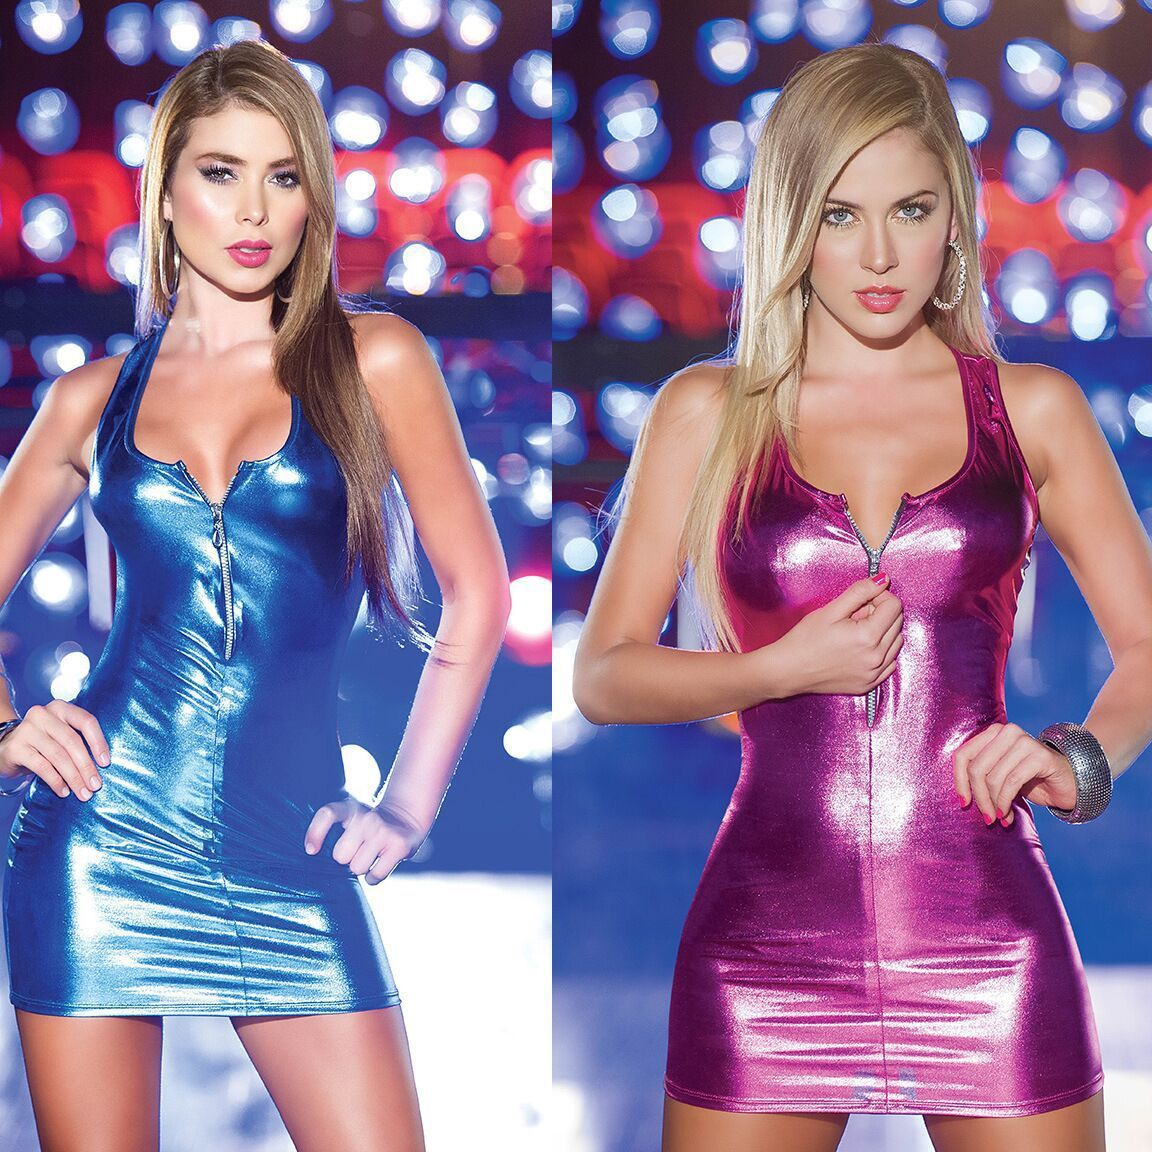 Charmed Sexy Zipper Vest Patent Leather Lingerie Imitate Stage Woman Shiny Open Bra Dress Pvc Catsuit Robe Club Erotique Qz*